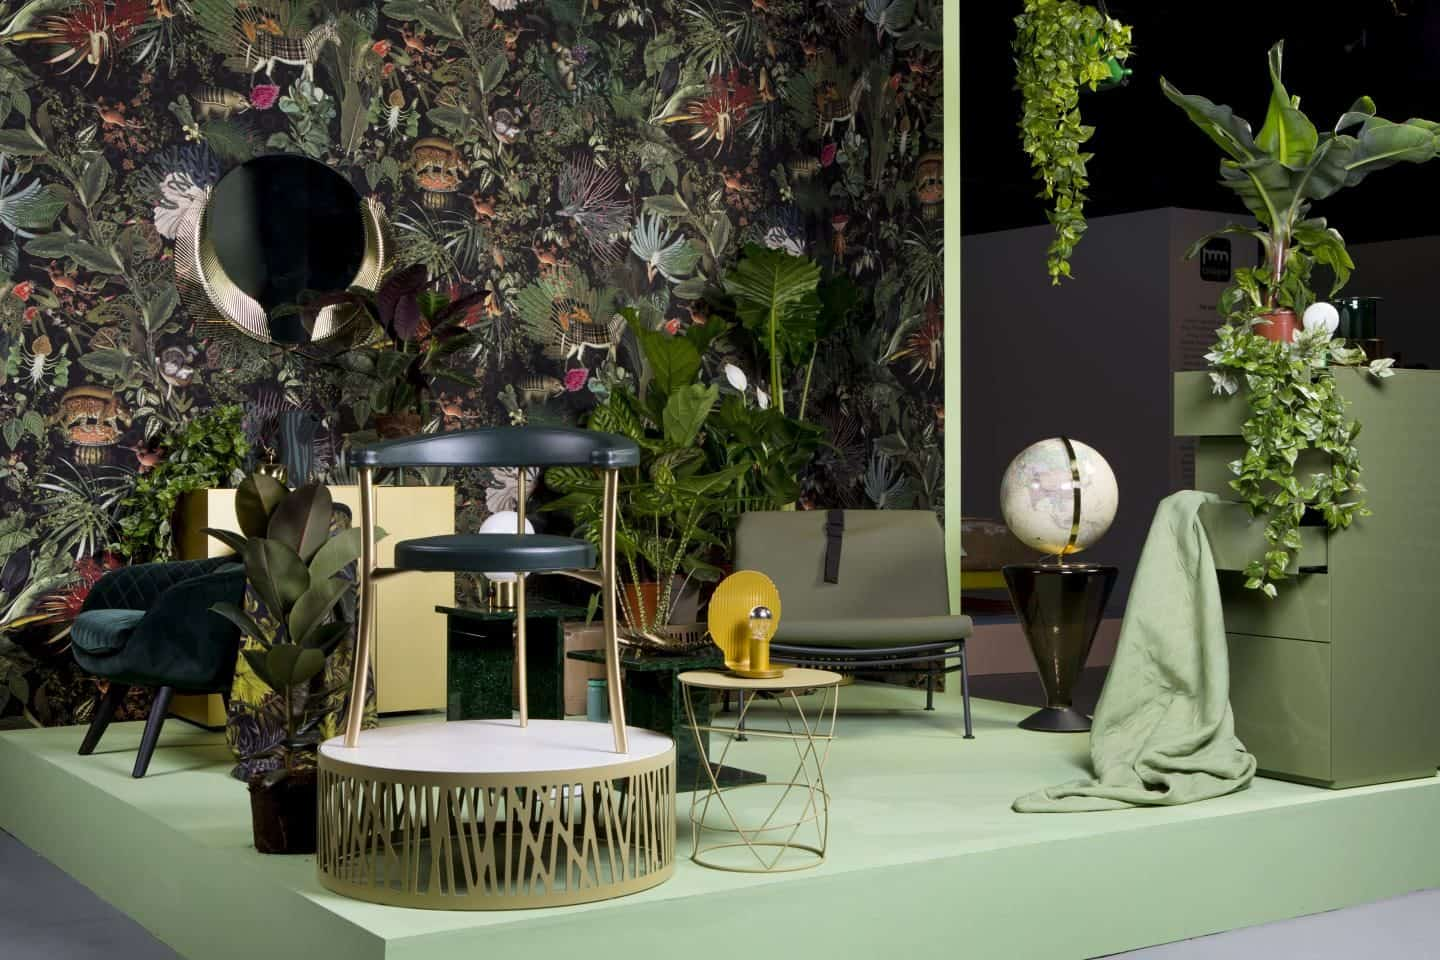 2019 Interior Design Trends as seen at Imm Cologne - The Traveller